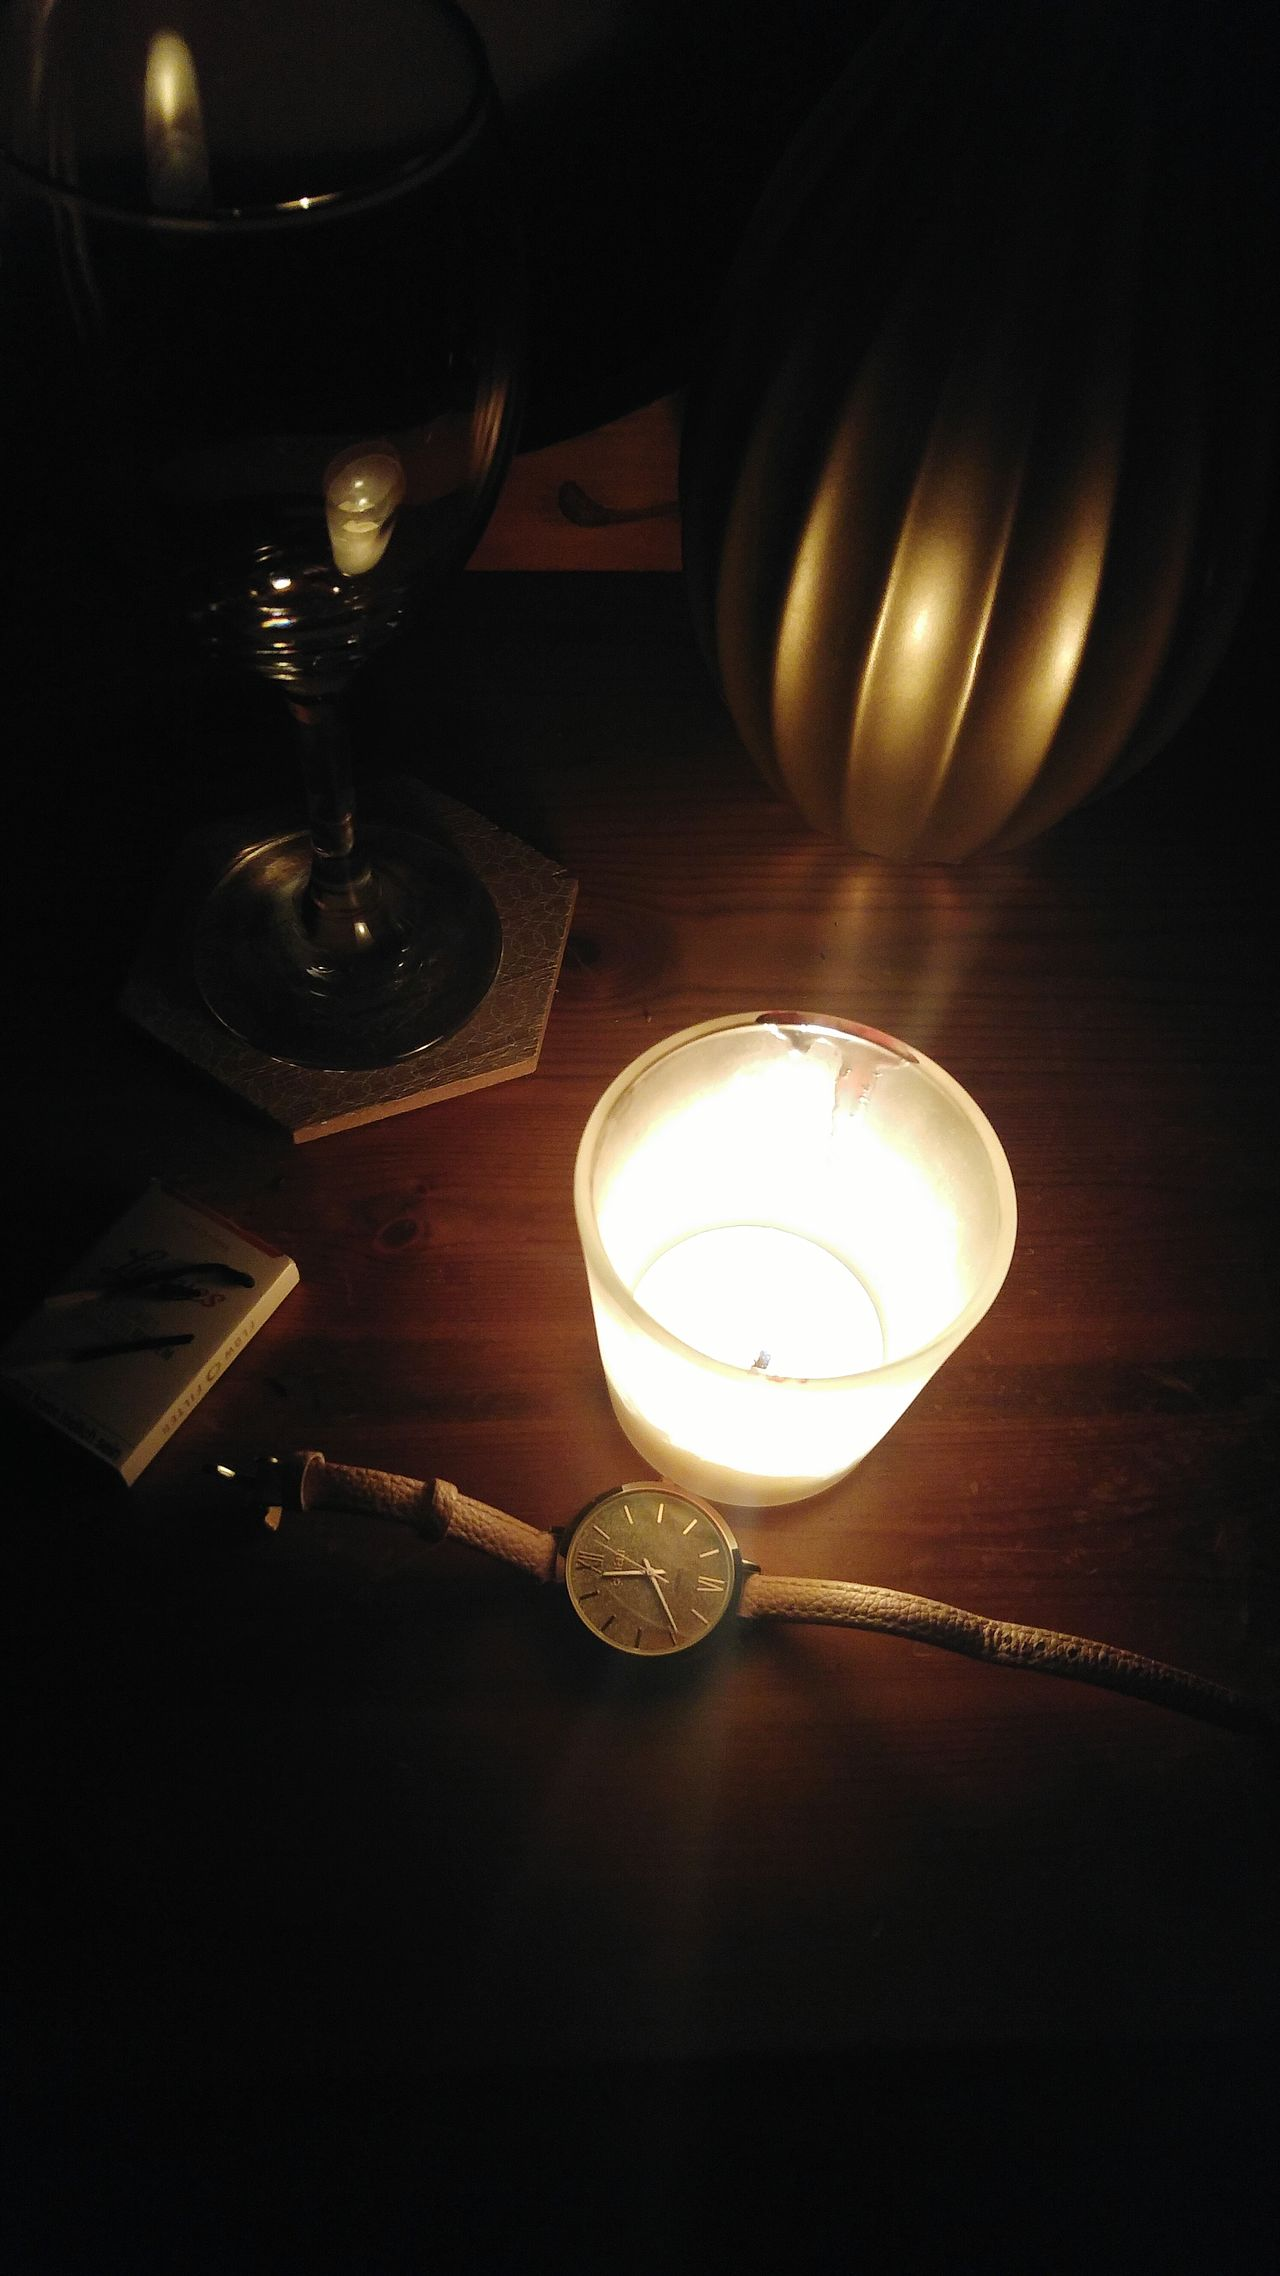 Time There's Always Time Illuminated Warmth Candle Light Candle Darkness And Light Night Indoors  Burning Wood Matchsticks Watch Wineglass Glass Wax Reminiscing Passing By Passing Time Illuminated 3XSPUnity